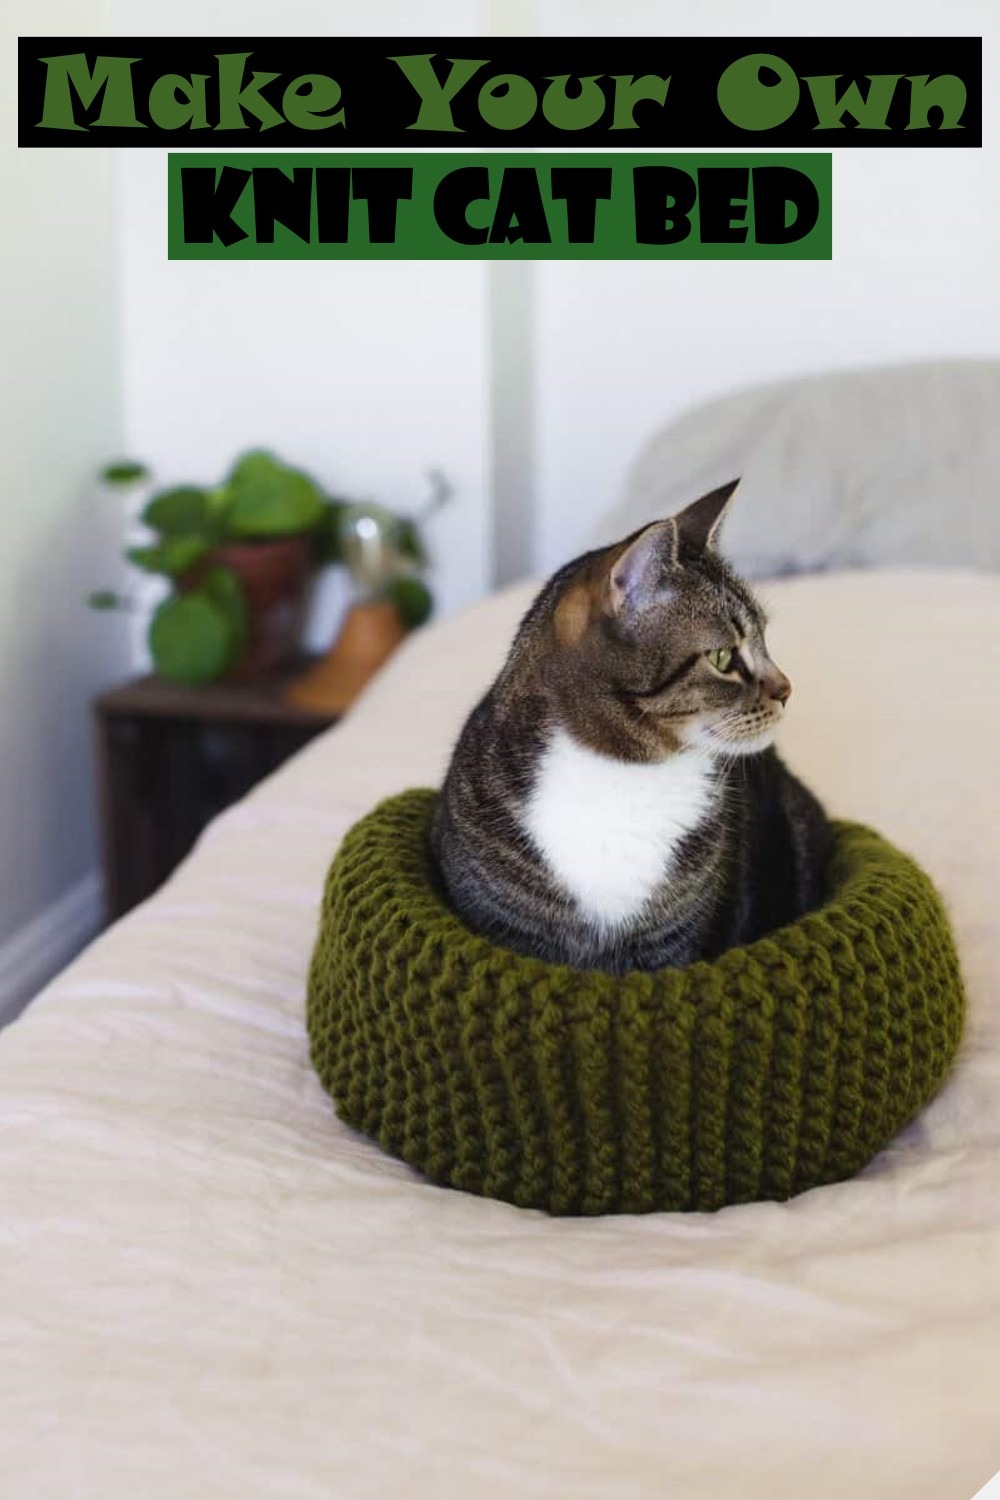 Make Your Own Knit Cat Bed